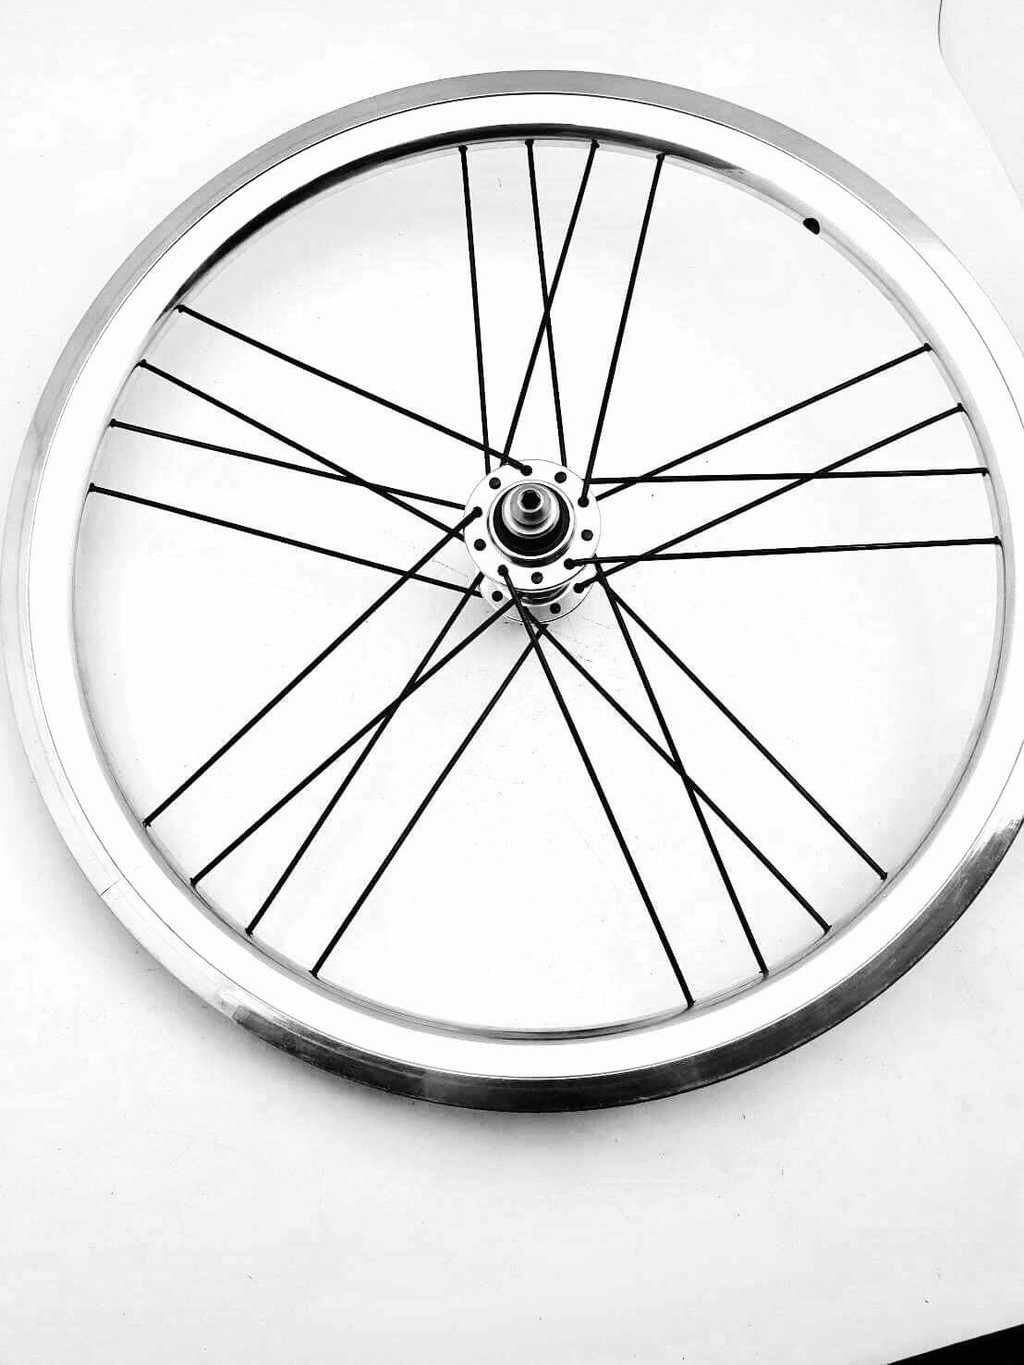 Ridea Bicycle Components - Page 8 30424810